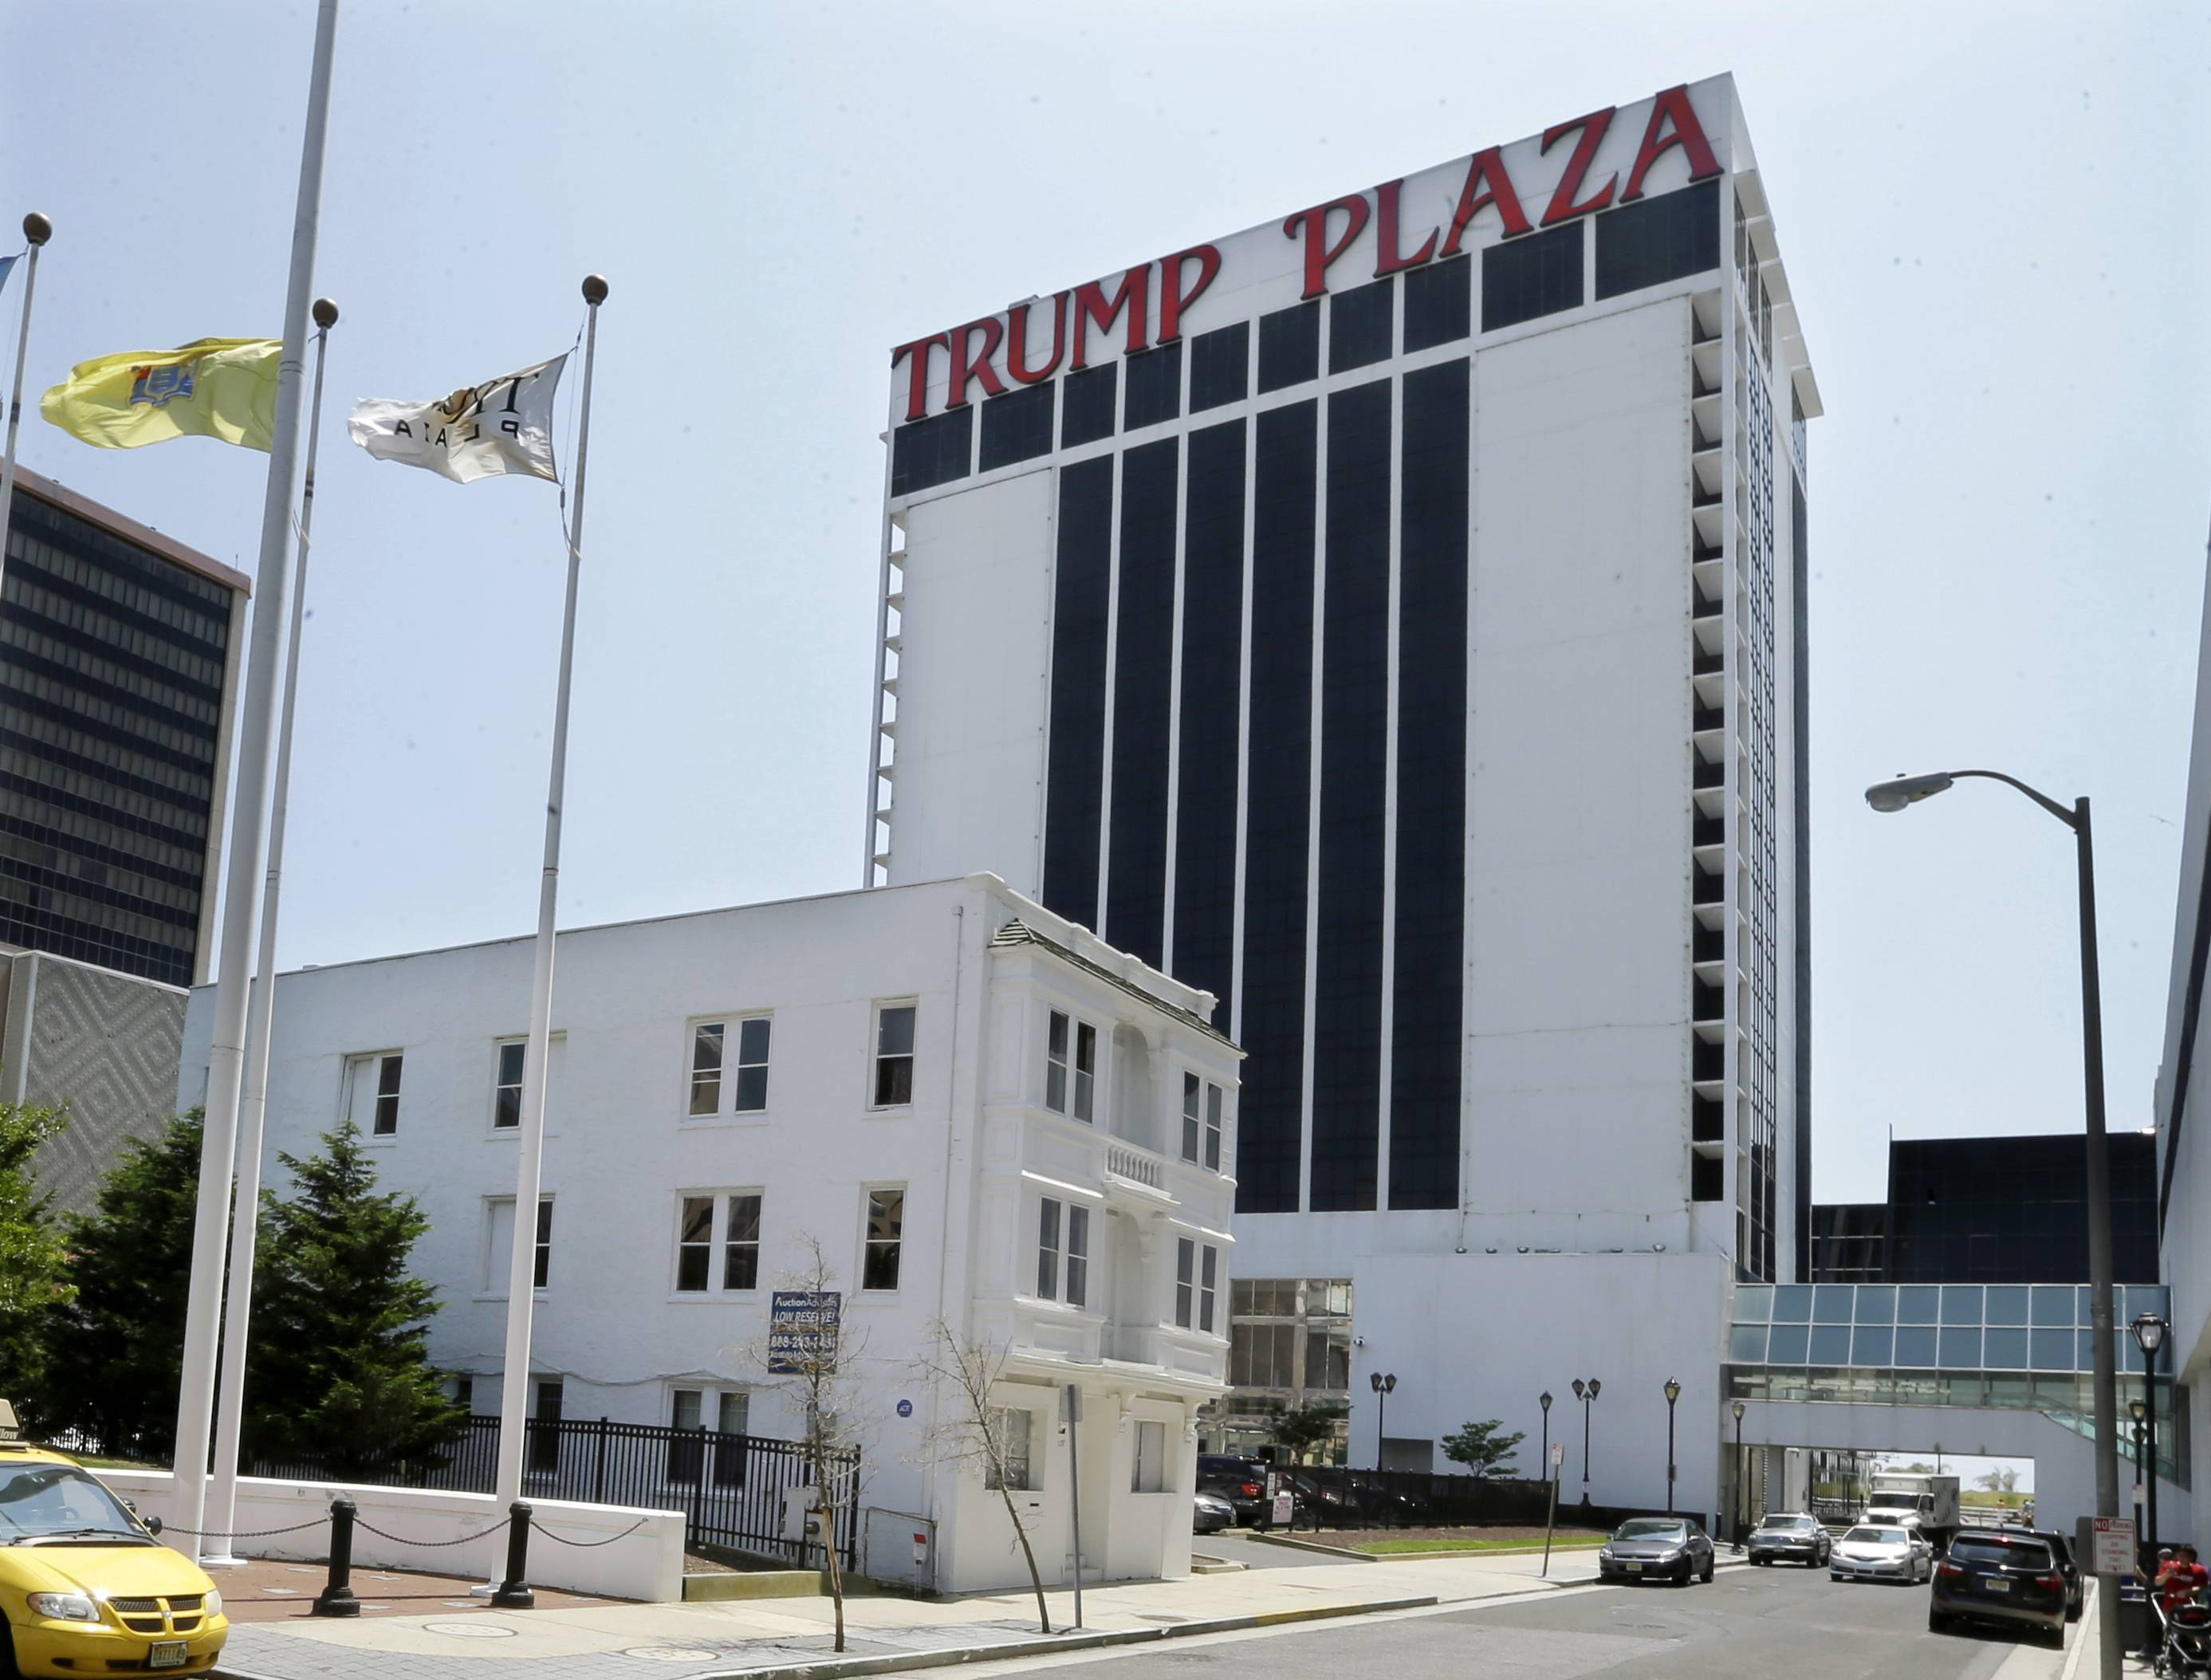 Trump Plaza Hotel and Casino towers over Vera Coking's three story rooming house in Atlantic City, N.J.